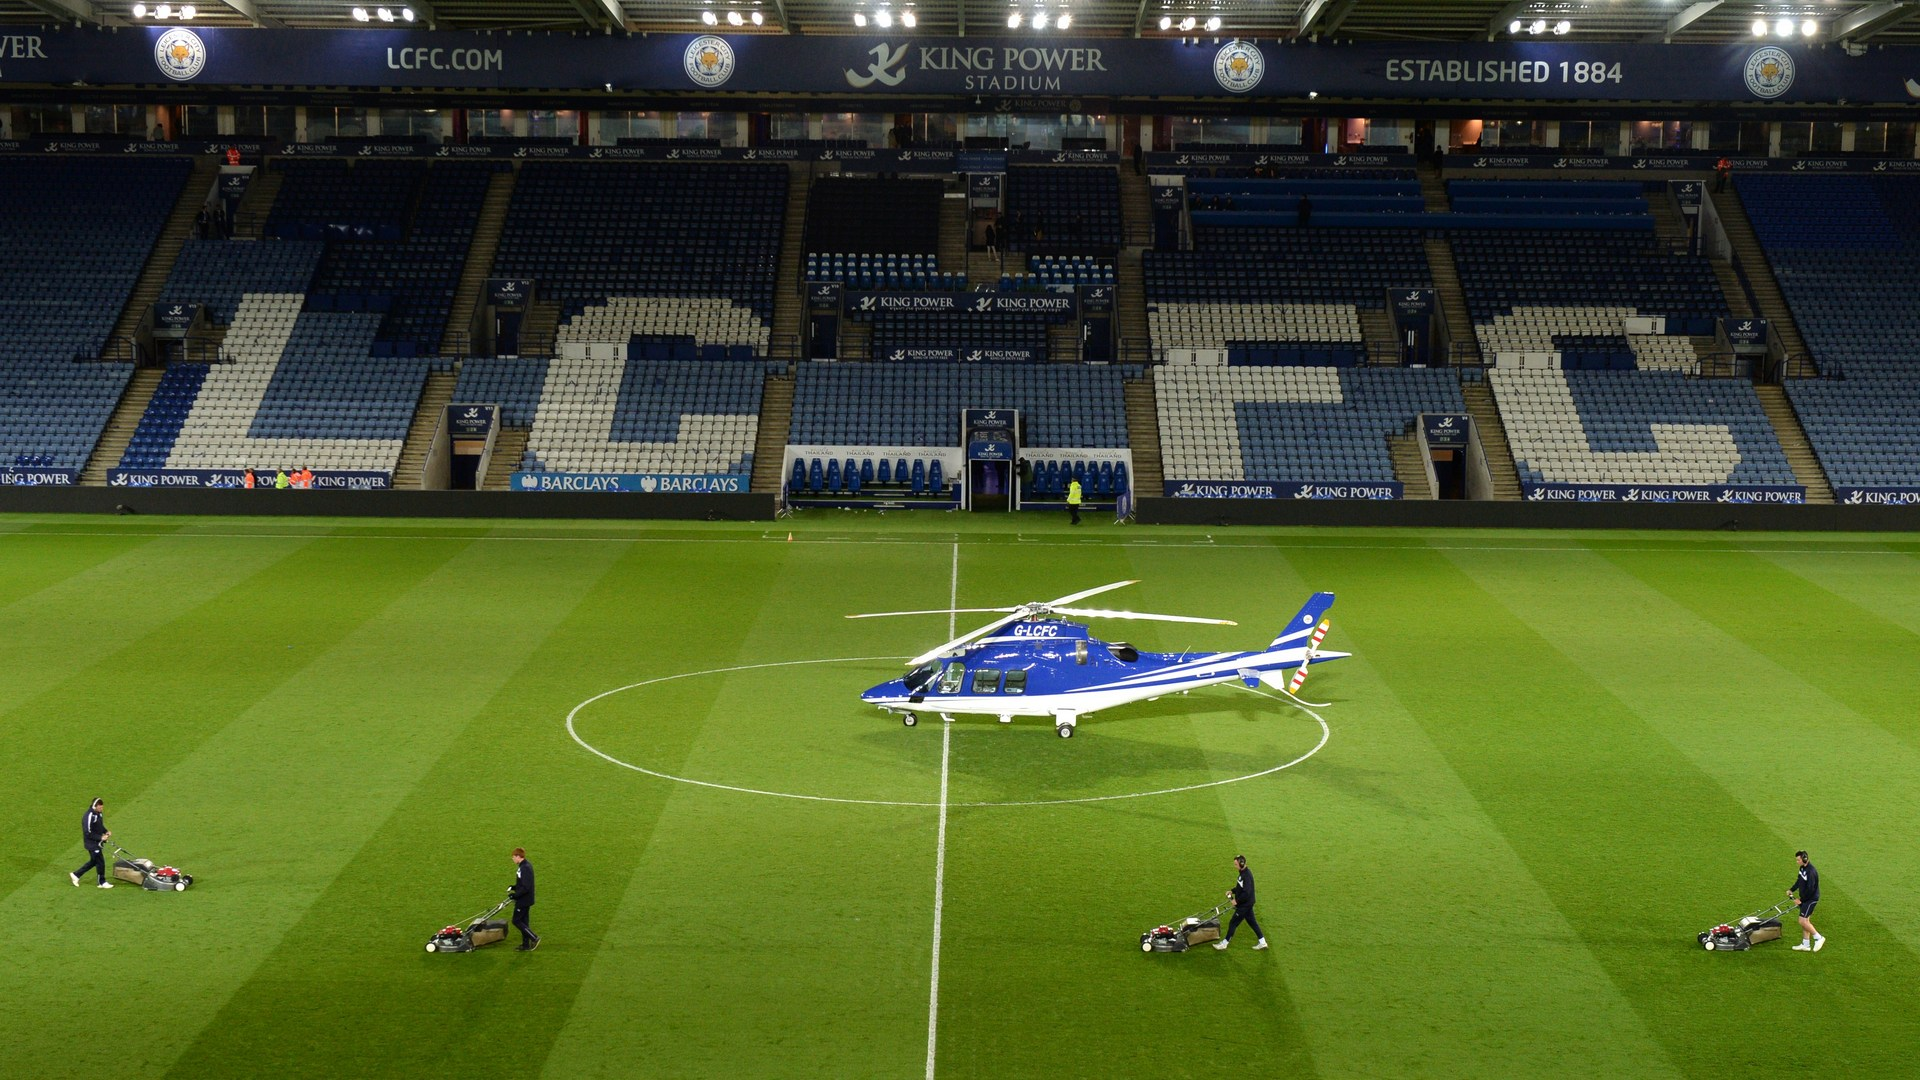 Leicester City football club owner's helicopter crashes outside team stadium